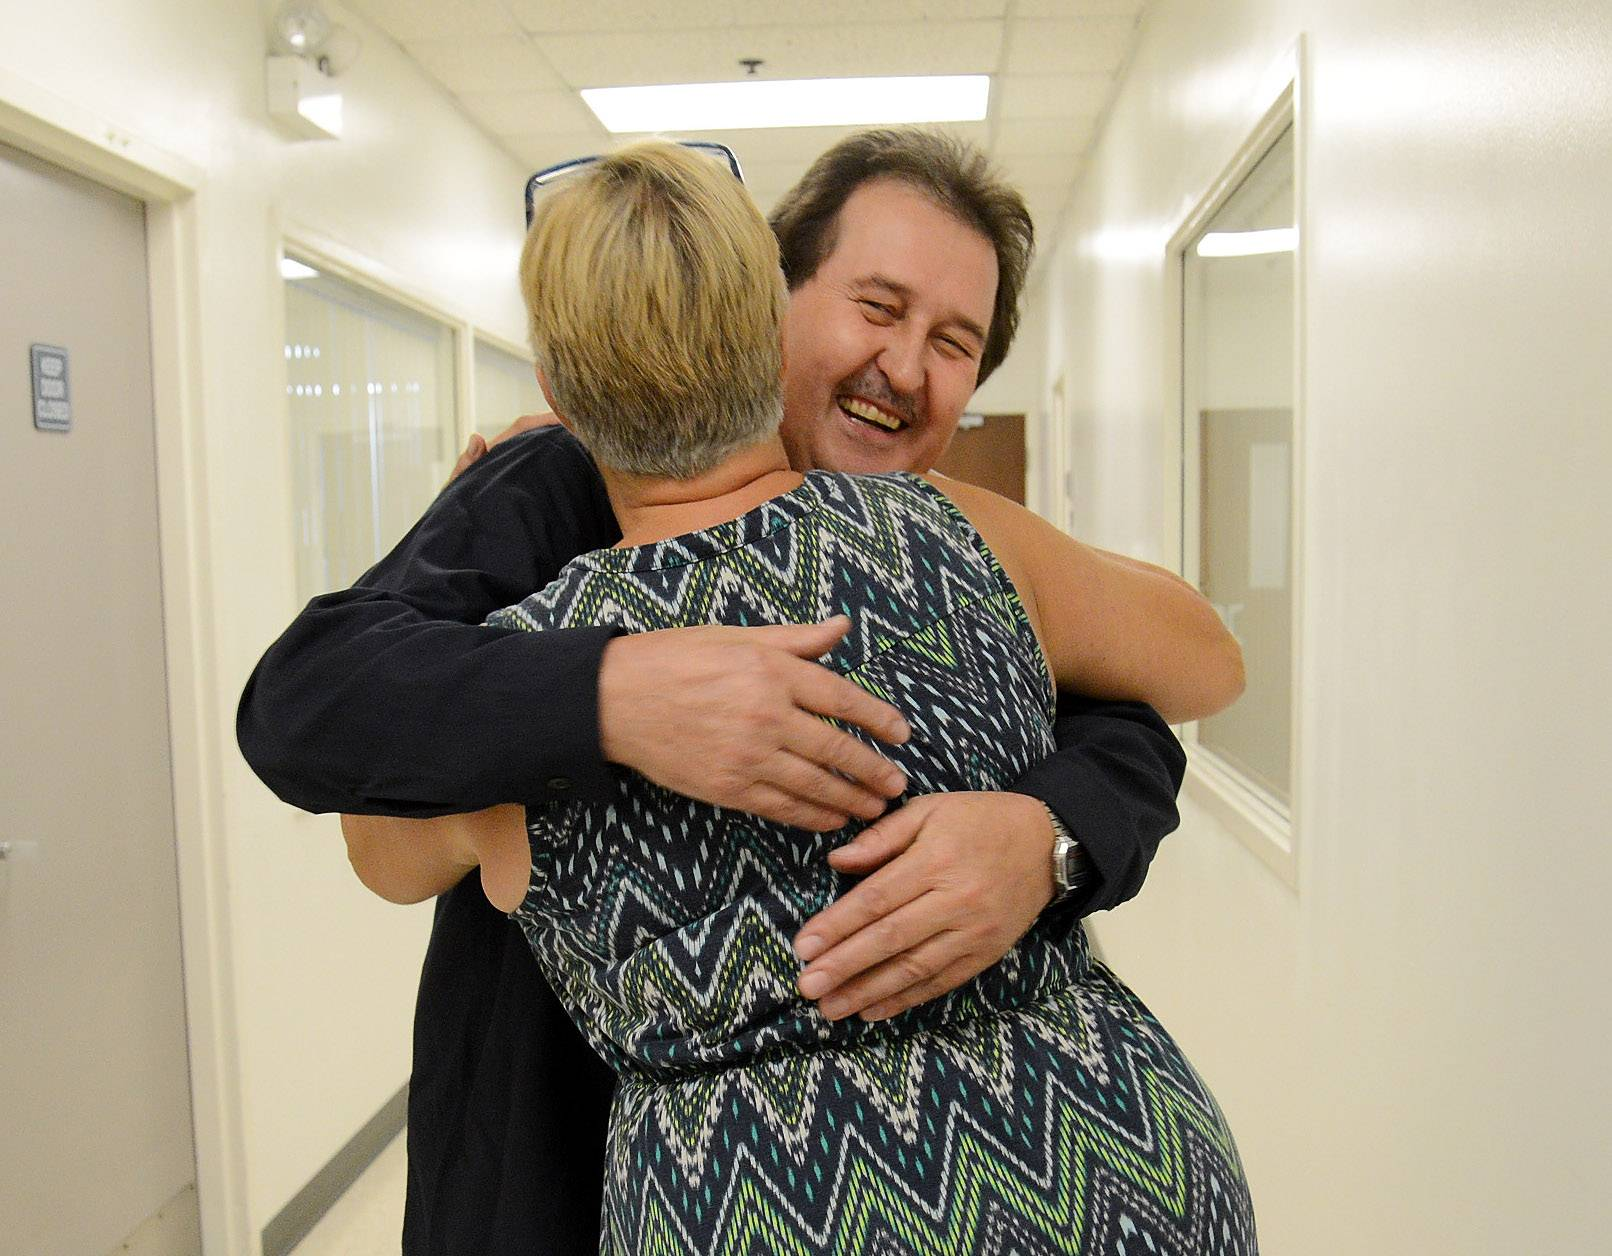 Engis Corp. employee Henry Kosinski is hugged by Customer Service Supervisor Sally Jones on his first day back at work.